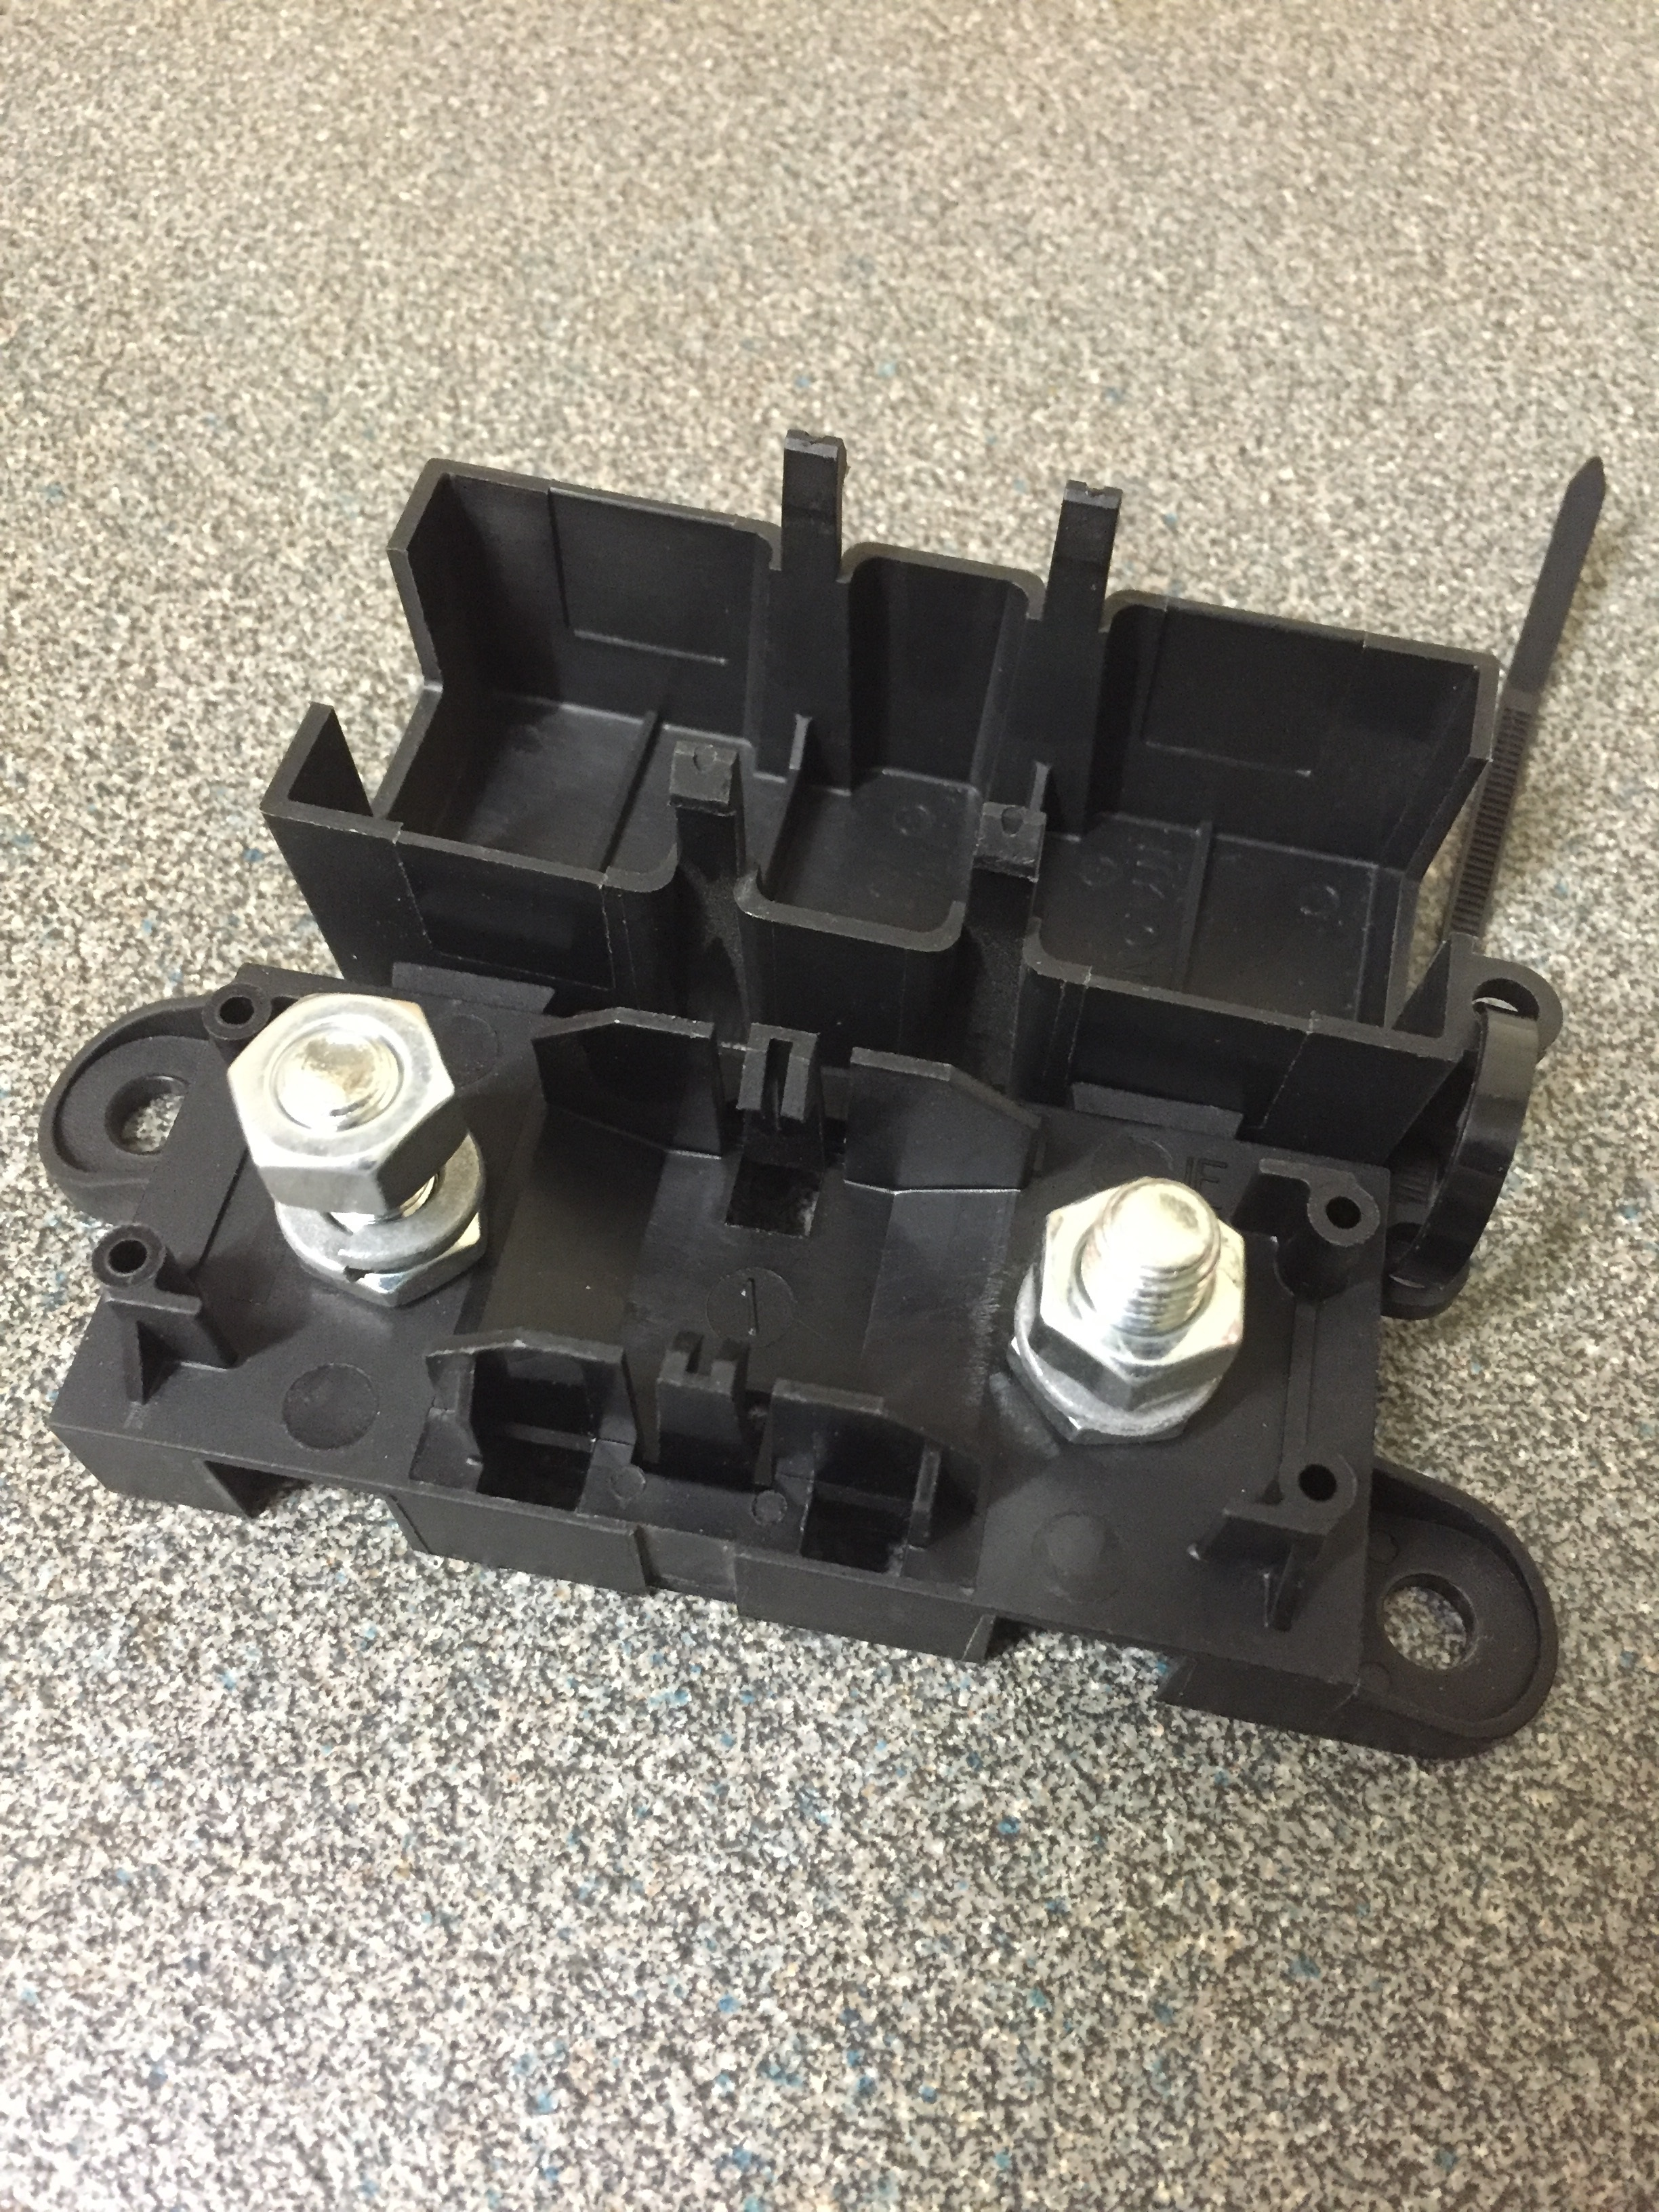 Anderson Connector Hgv Inverter Lead With Mega Fuse Car Box Uk Holder